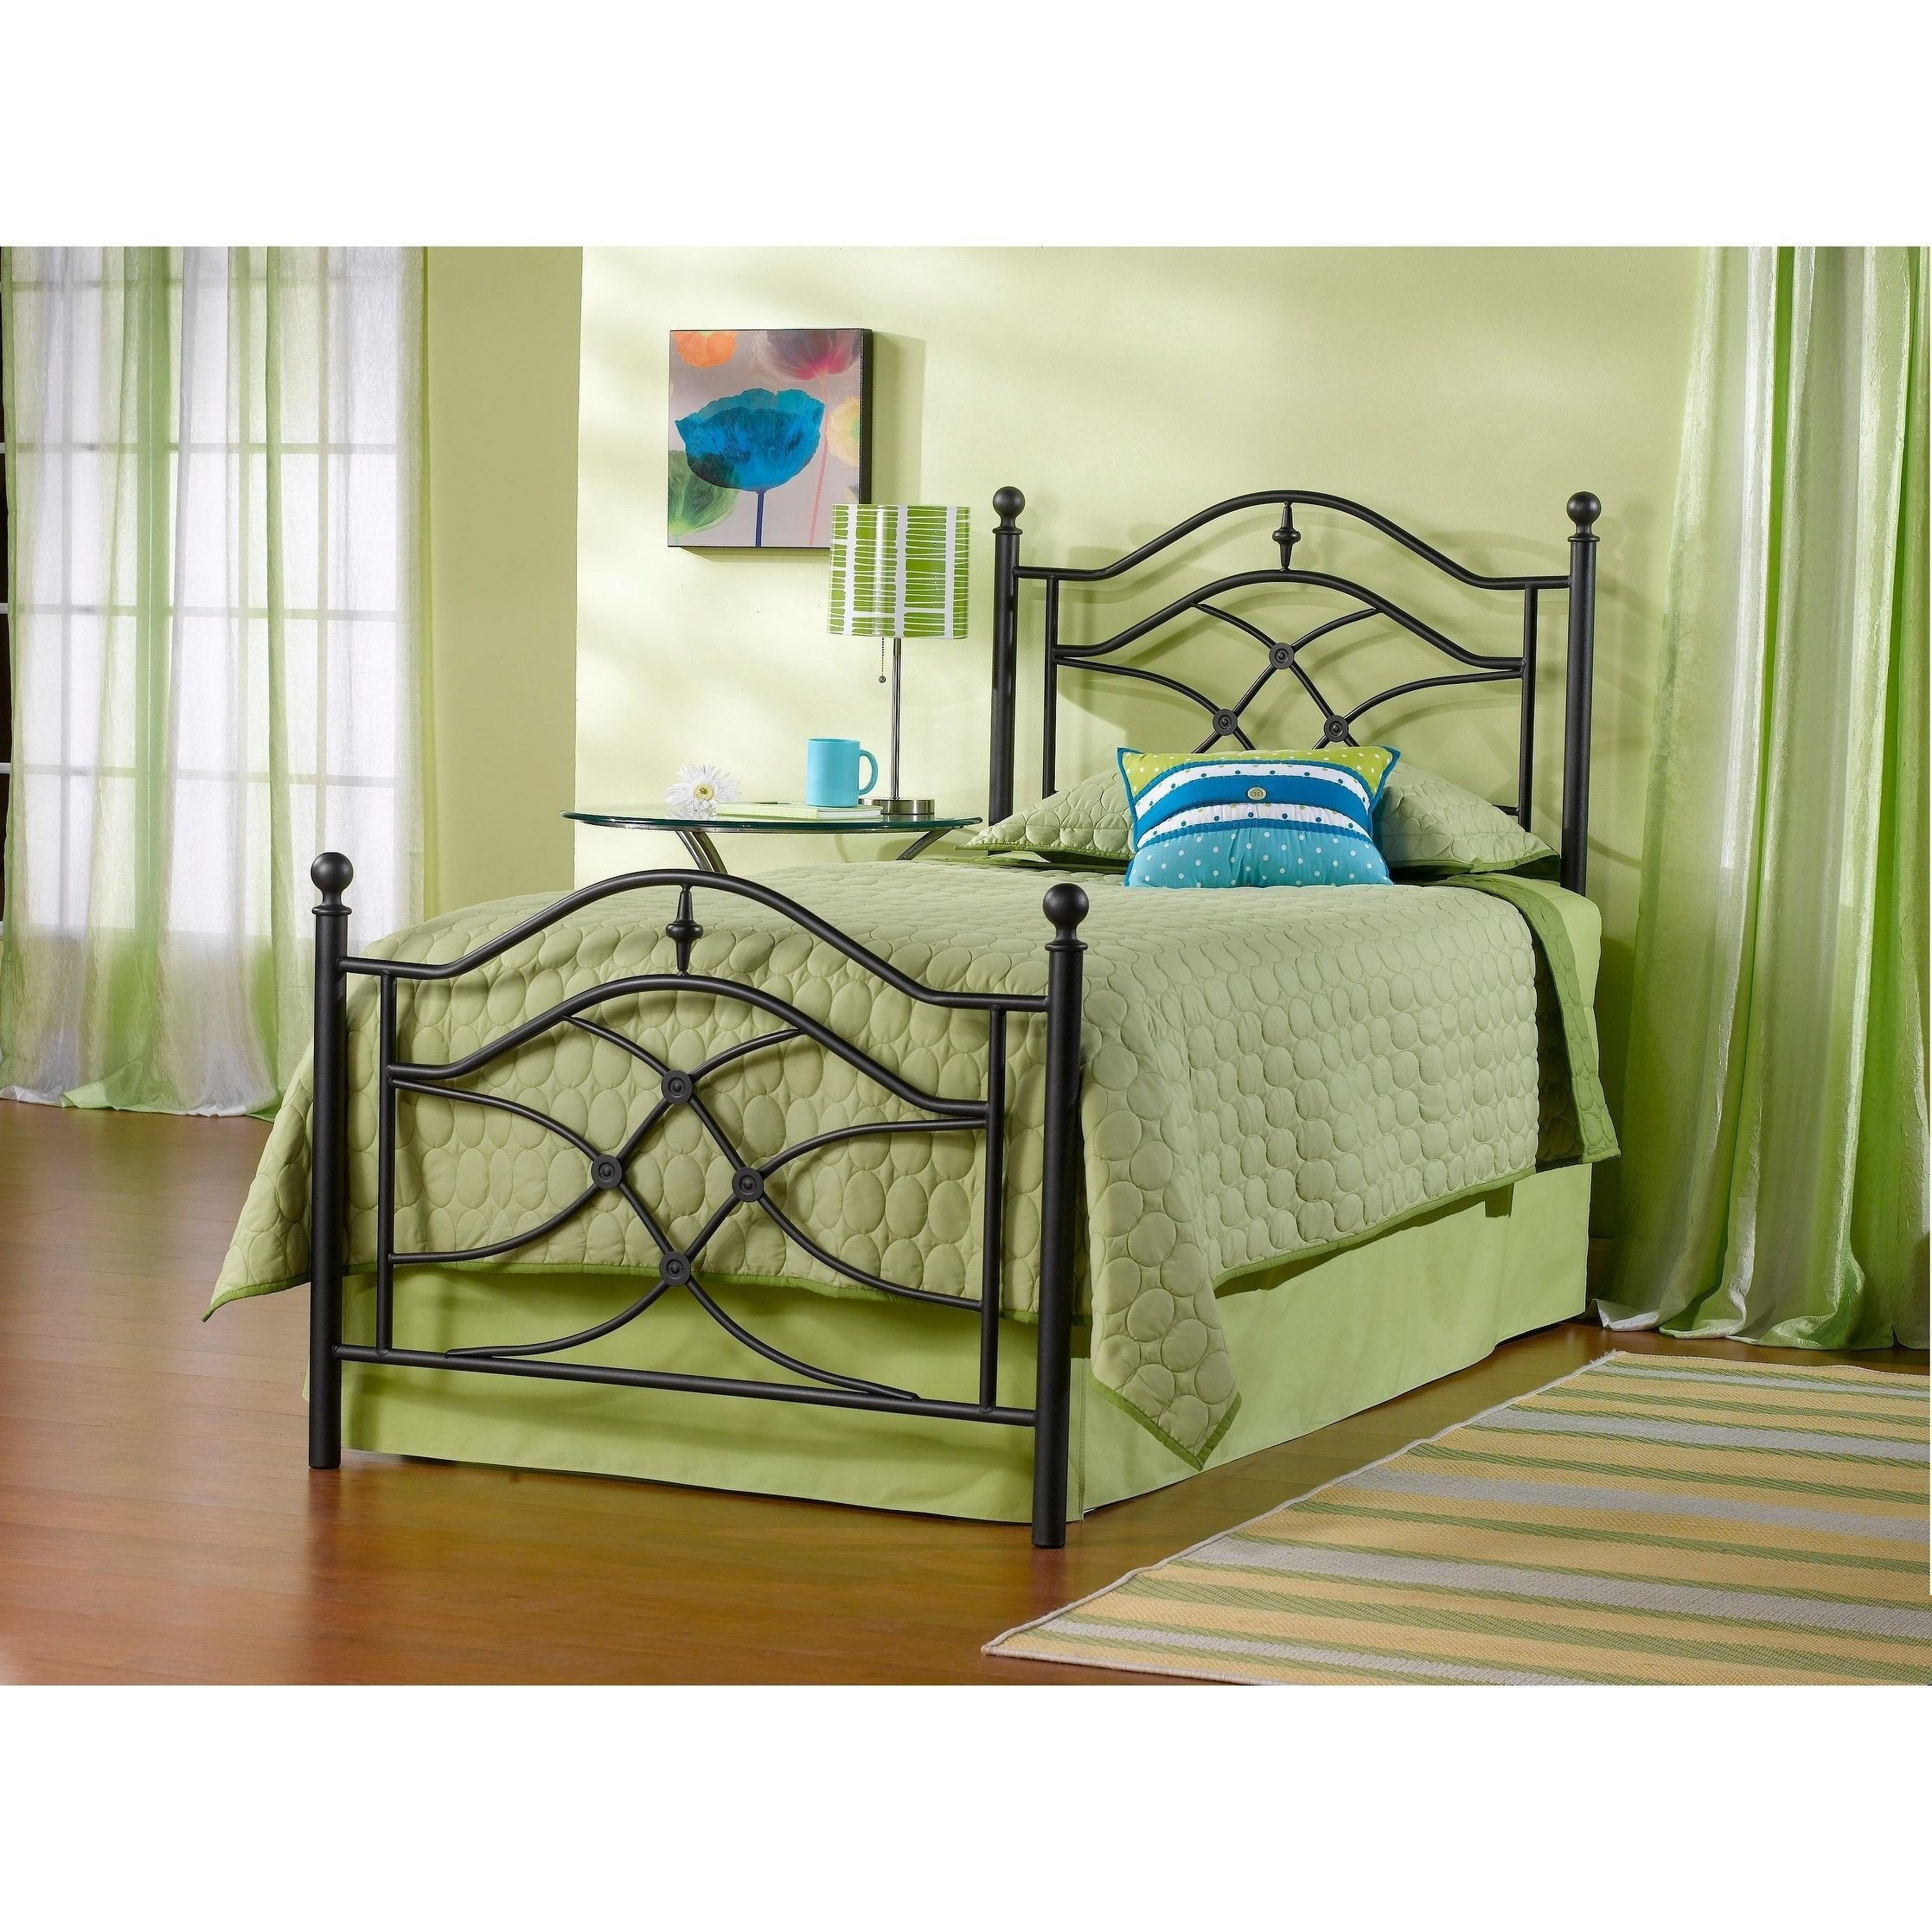 Bedroom Set with Mattress Included Unique Hillsdale Cole Bed Set Twin Rails Not Included Black